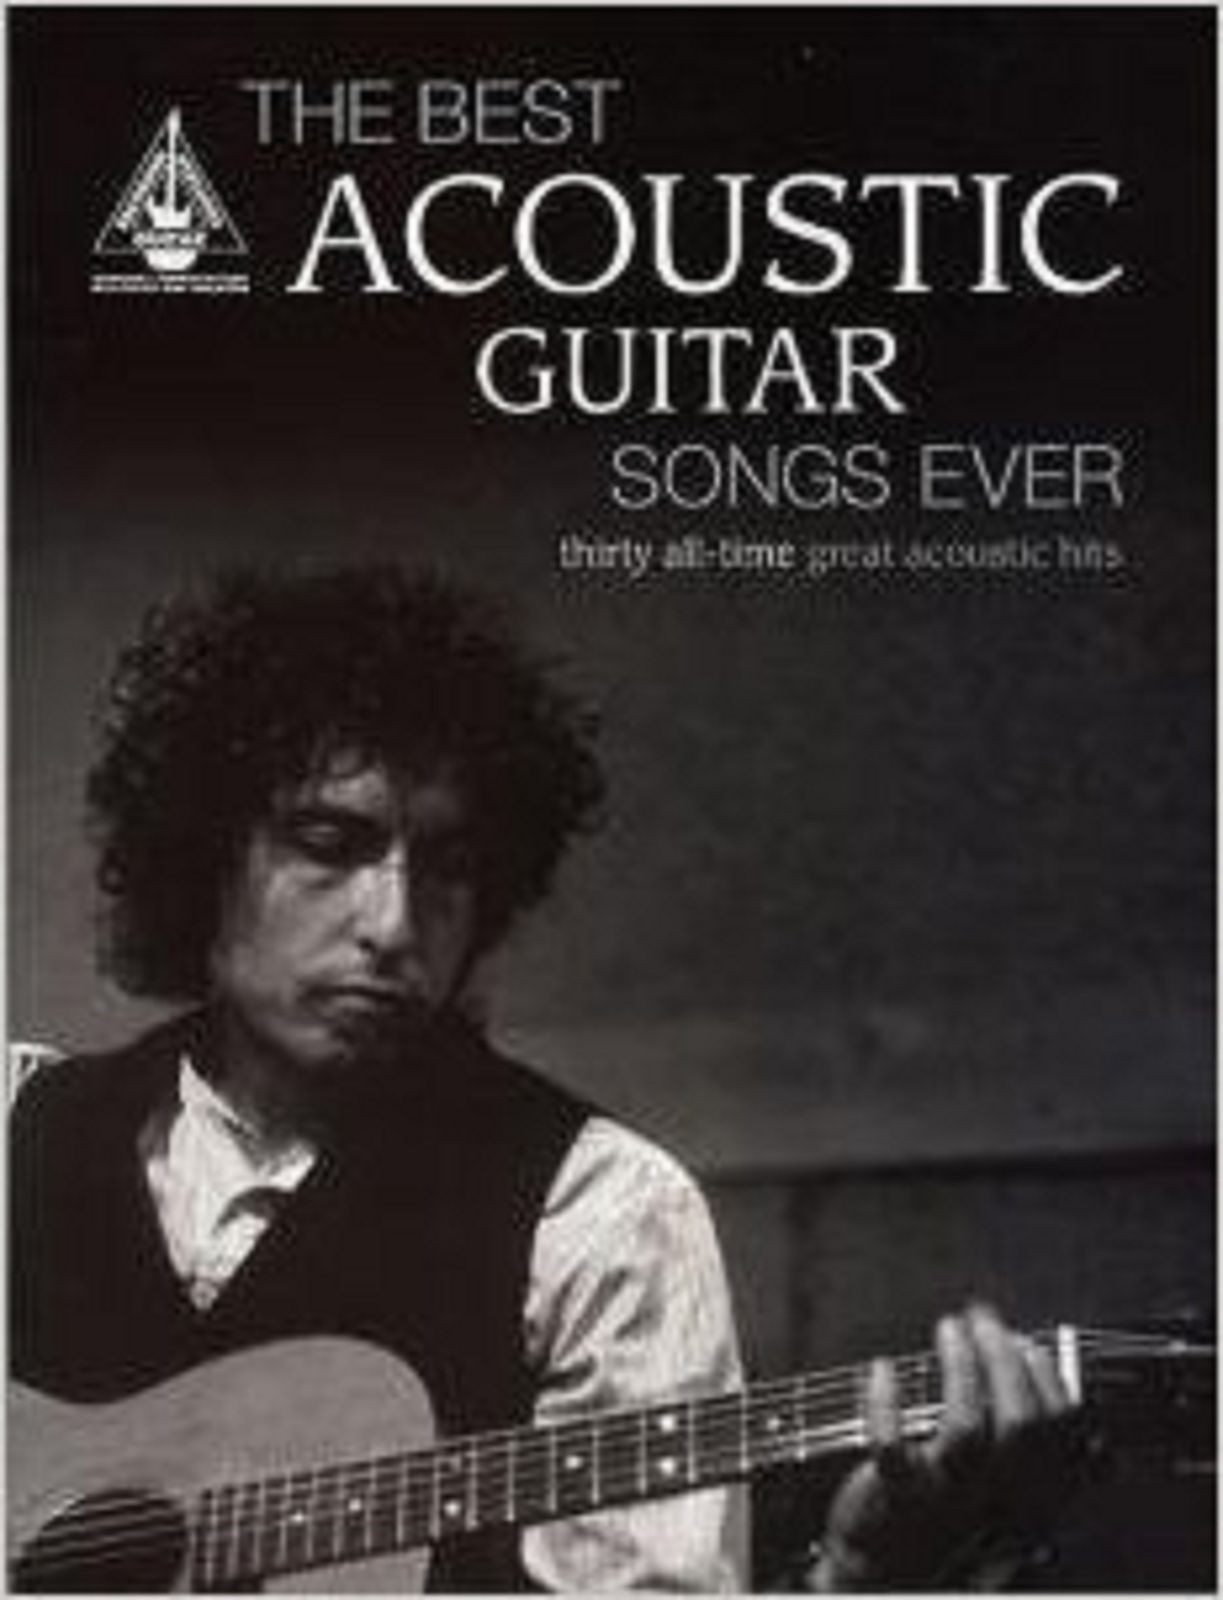 The Best Acoustic Guitar Songs Ever Hits Sheet Music TAB Chords Book S171